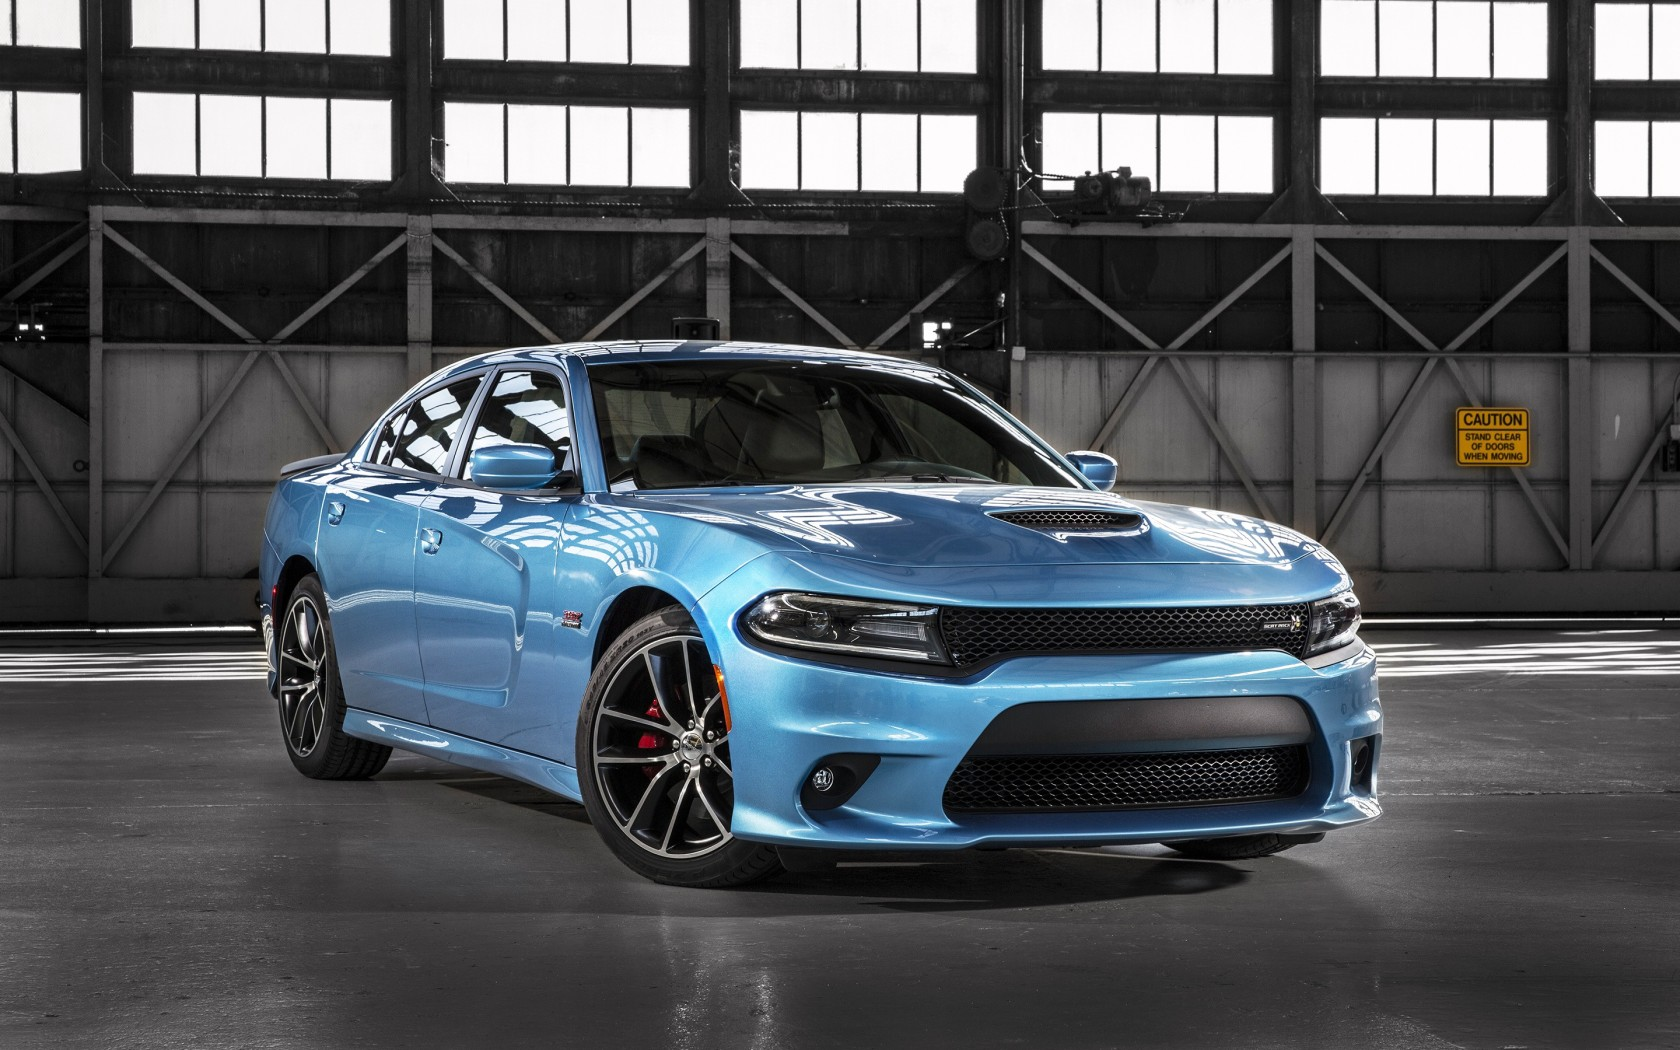 Charger Srt Hellcat >> 2015 Dodge Charger RT Scat Pack Wallpaper | HD Car ...